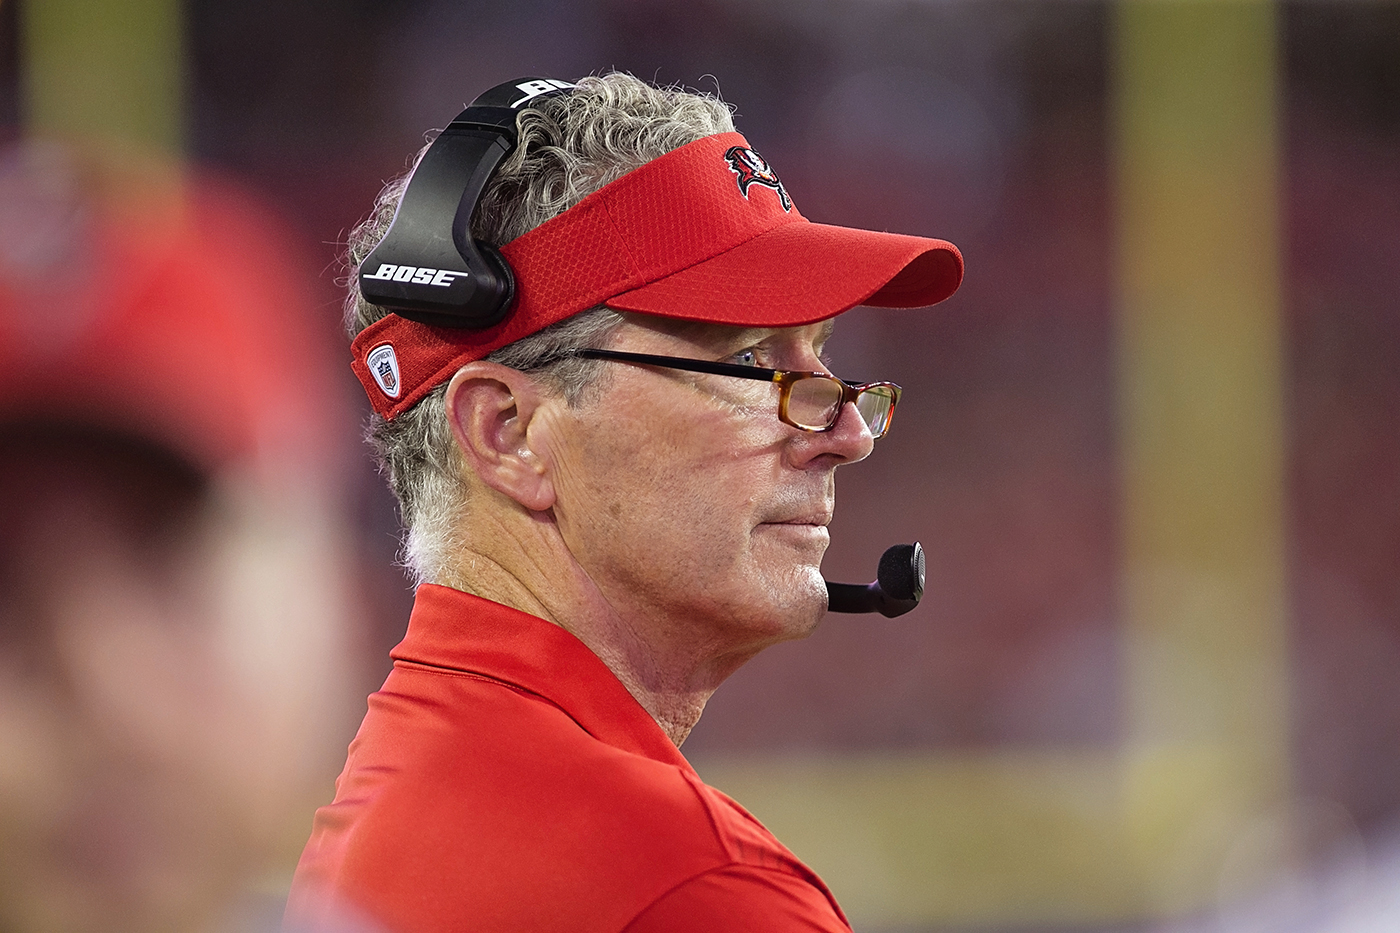 Koetter has to look to the second week of the season./CARMEN MANDATO